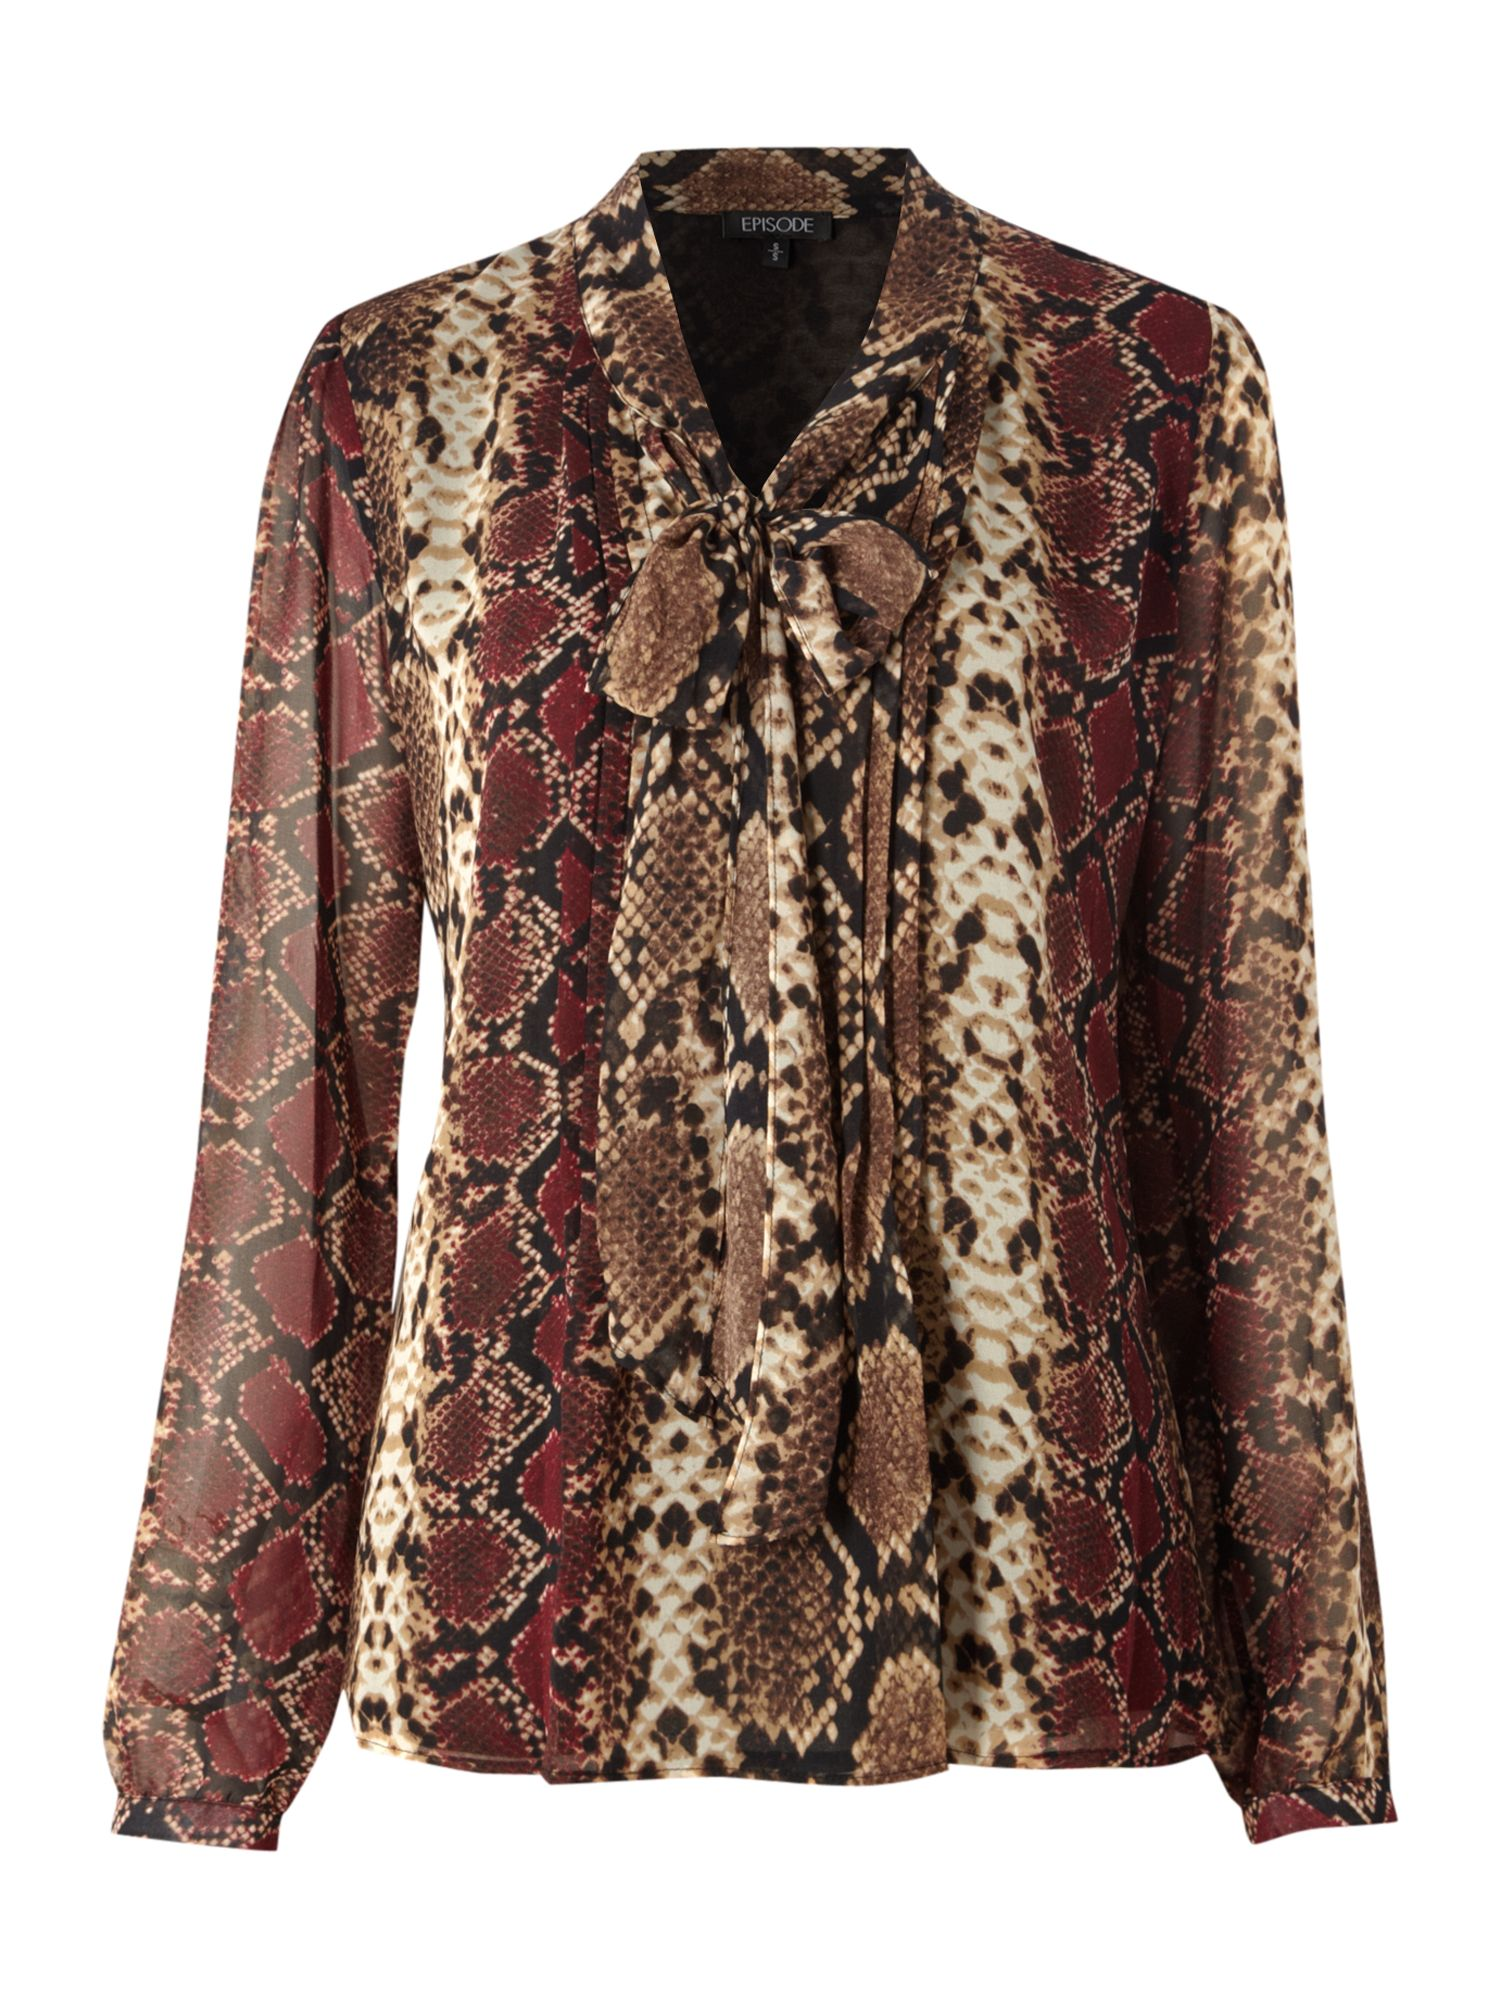 Episode Womens Episode Snake print tie neck blouse, product image